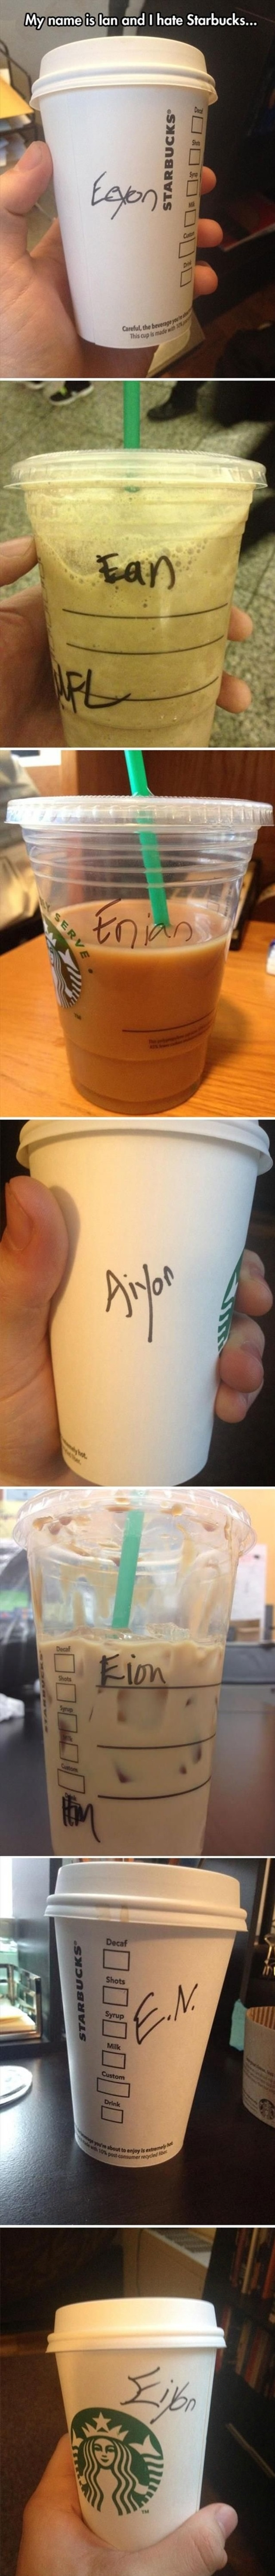 ian-starbucks-name-compilation